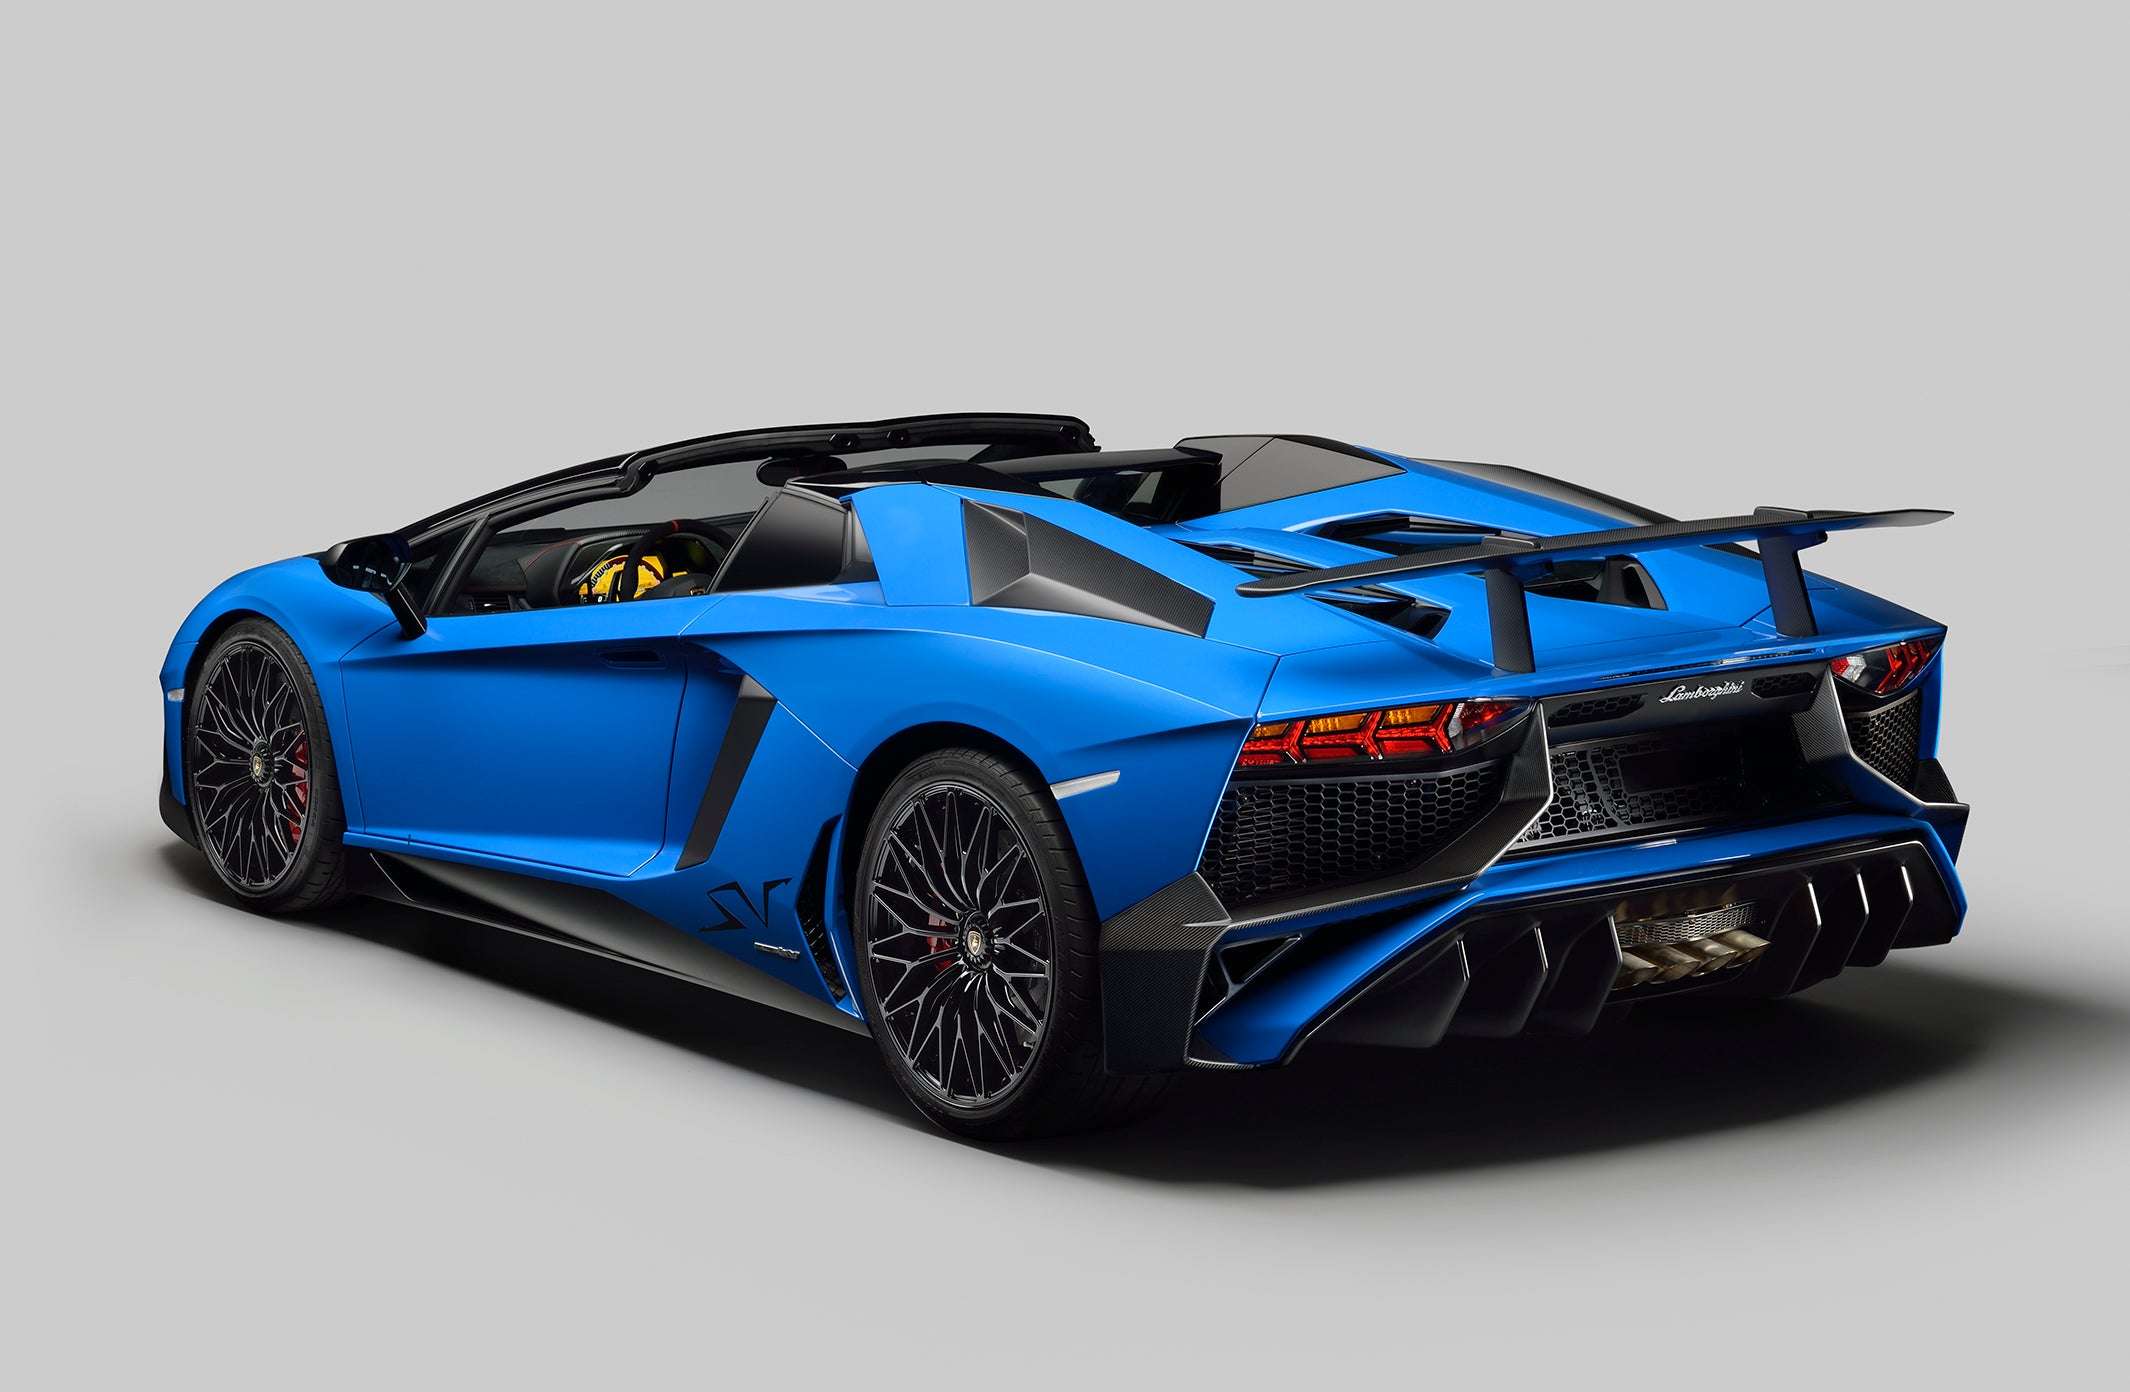 Lamborghini Aventador LP 750-4 Superveloce Roadster Unveiled in ...